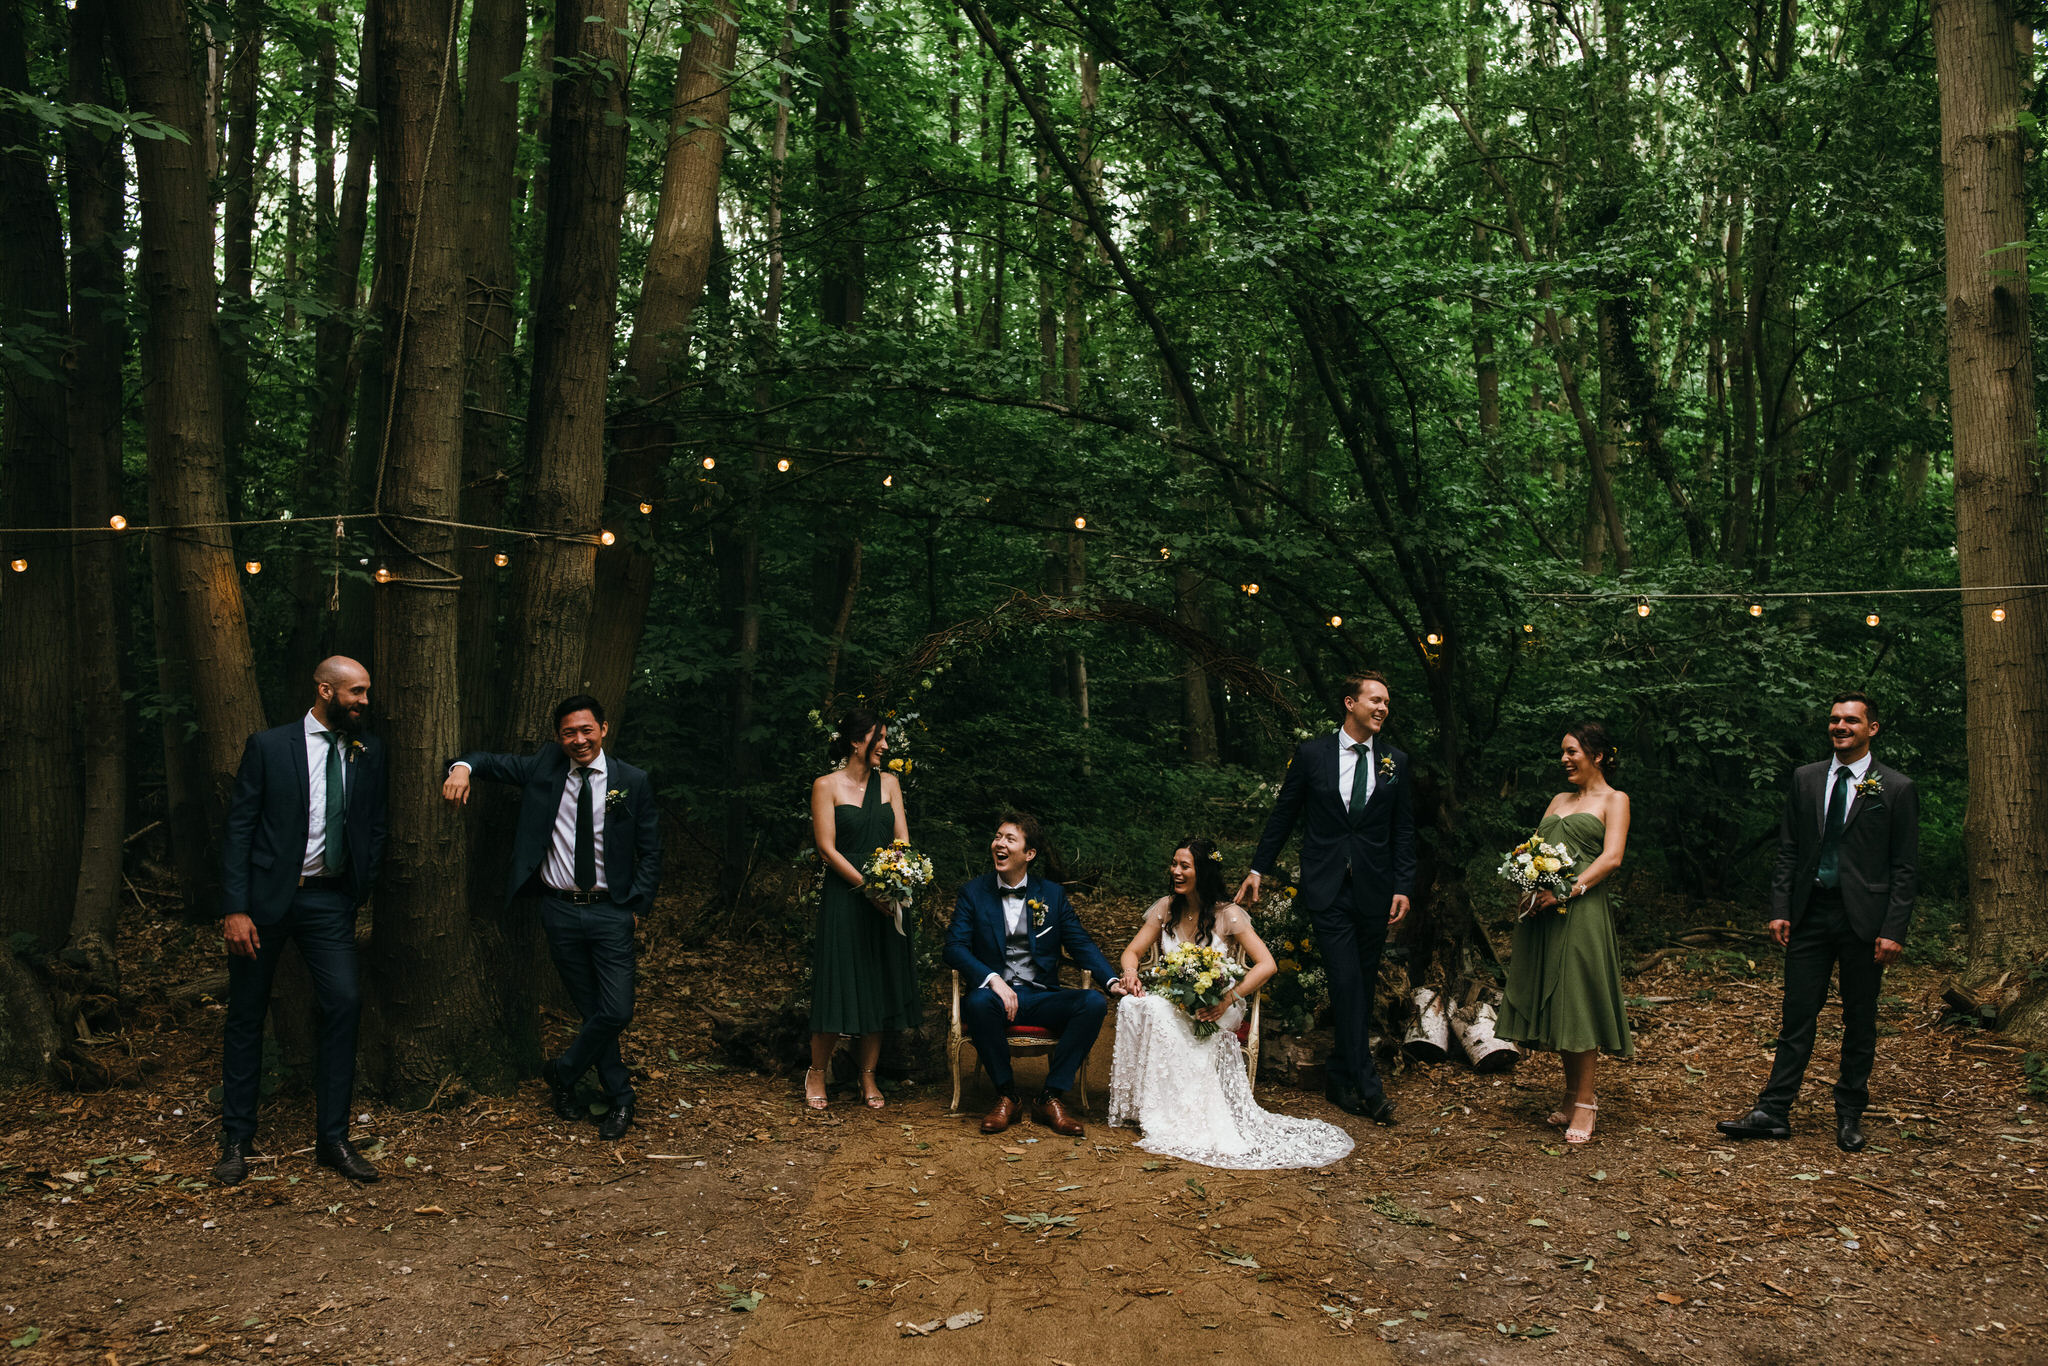 The dreys kent wedding photography - bridal party group